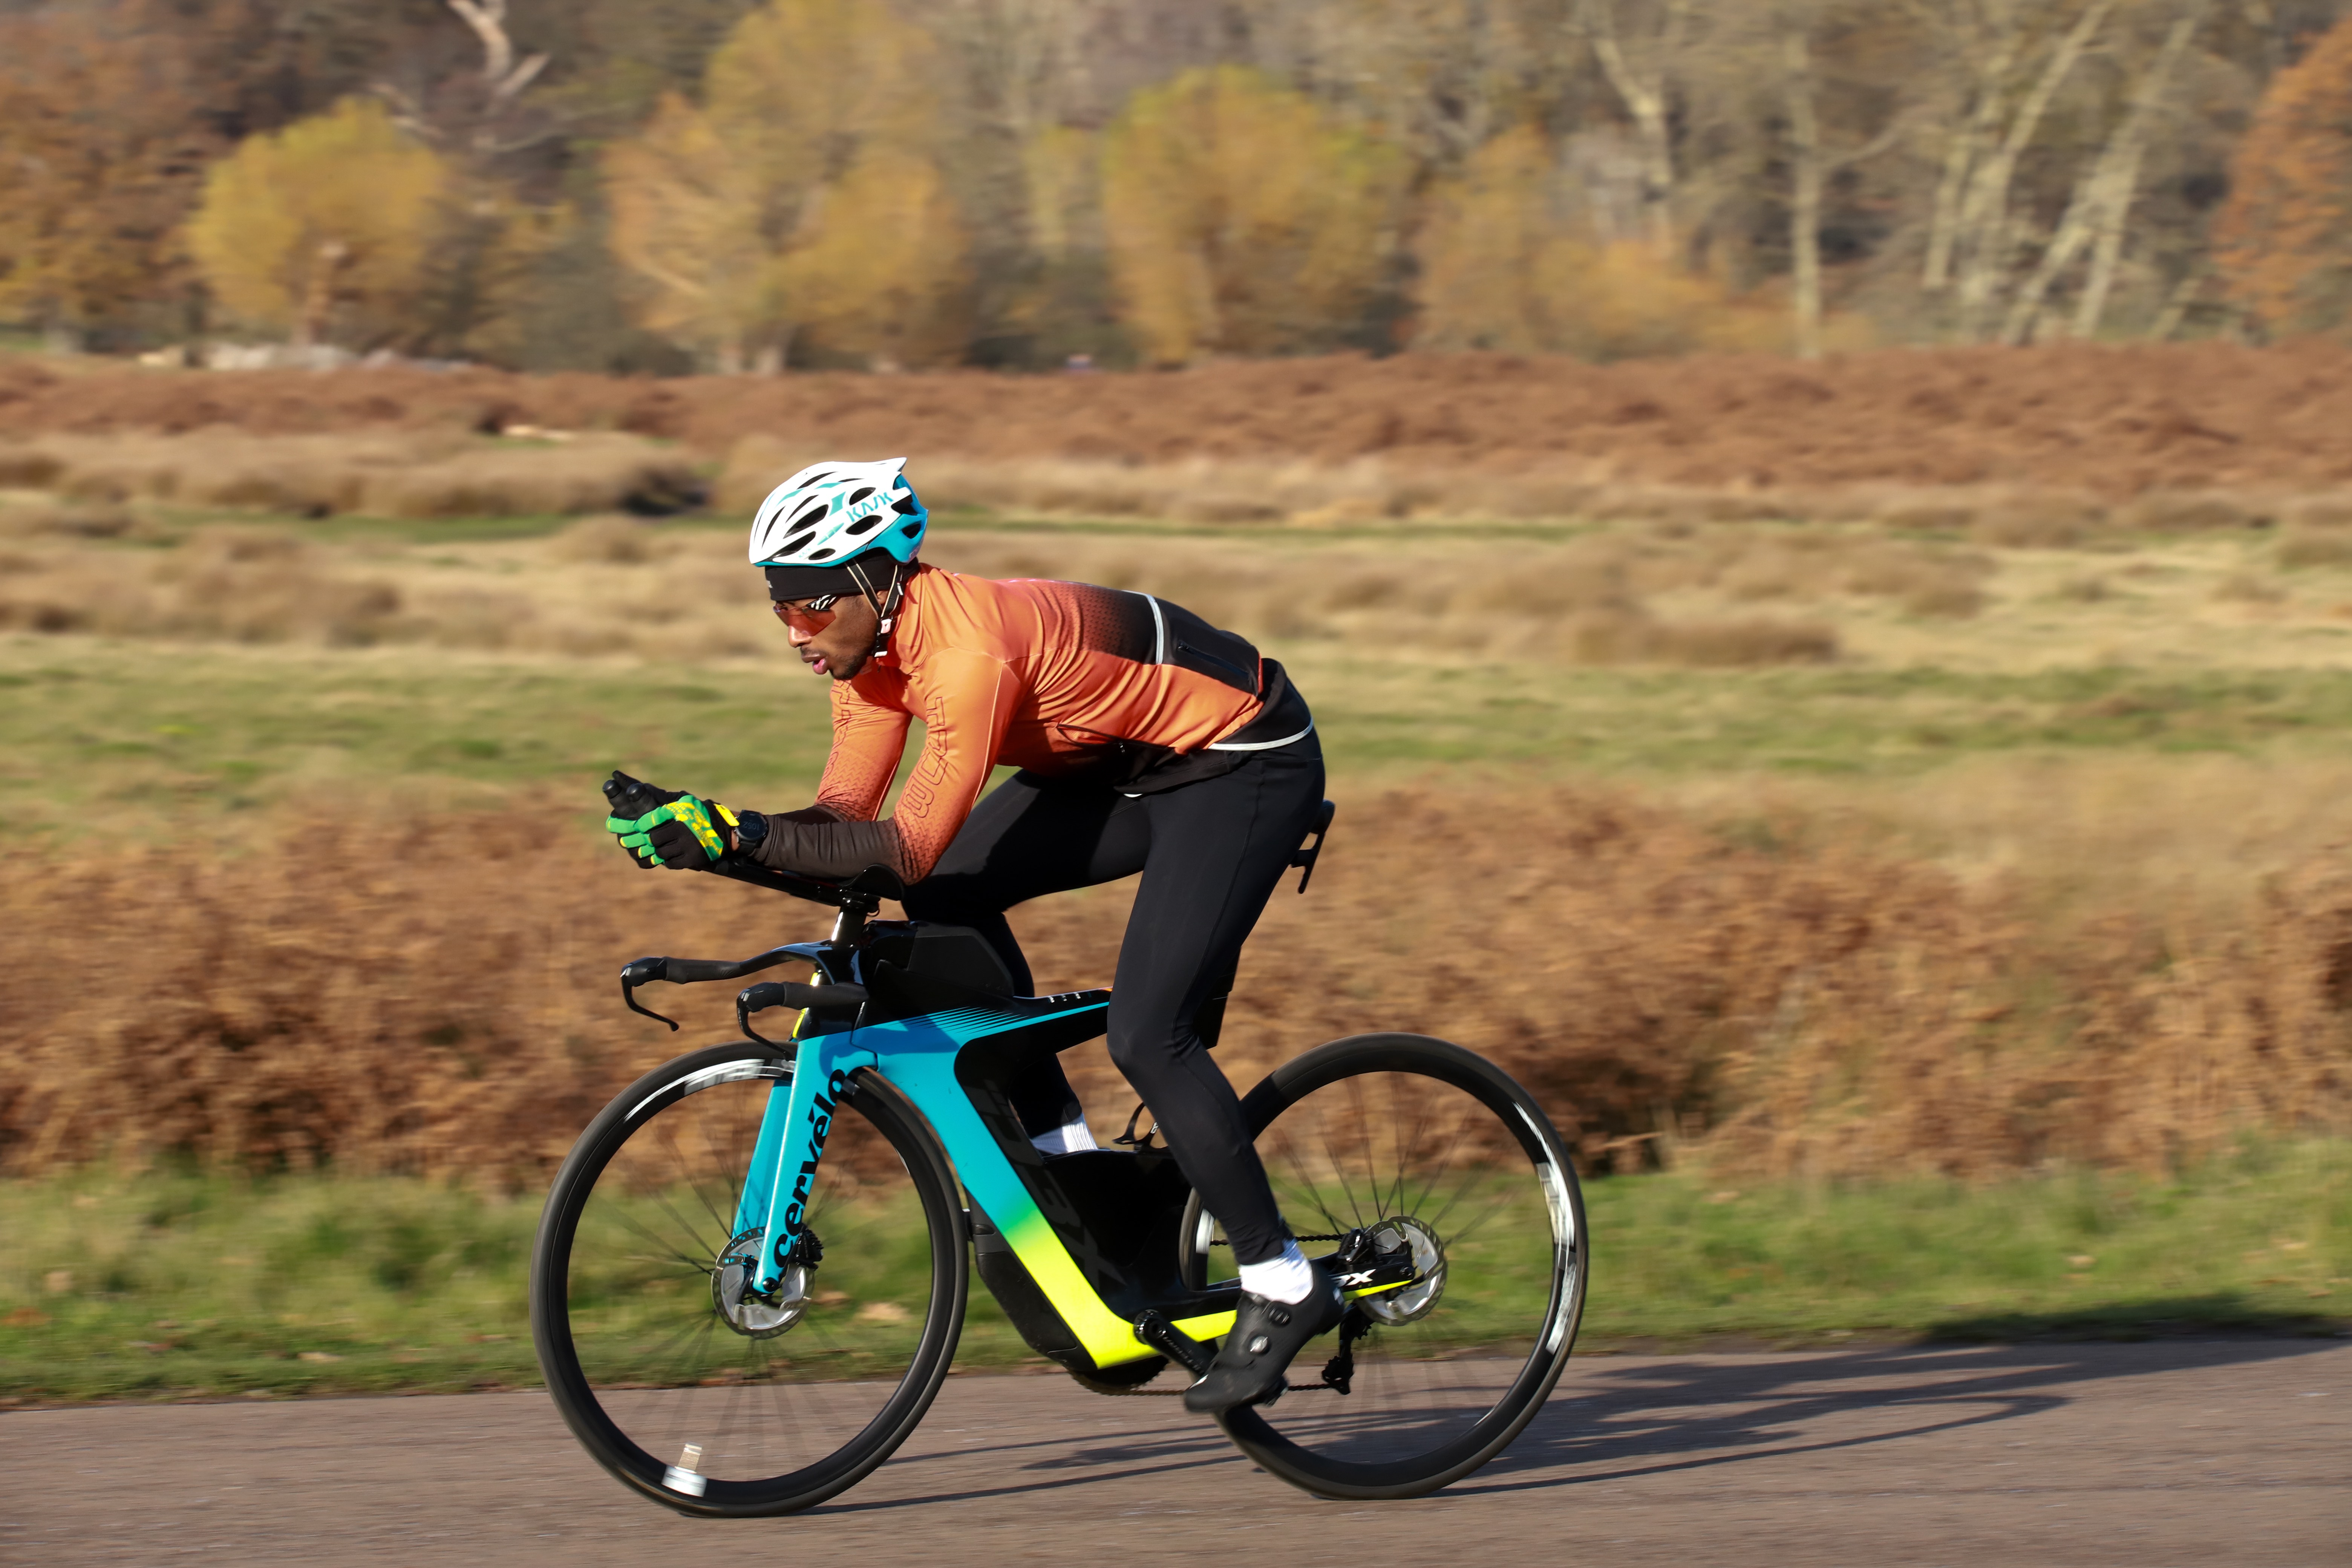 World-leading triathlon and cycling brand, HUUB, signs autistic triathlete, Sam Holness, to support his journey to become a professional triathlete.